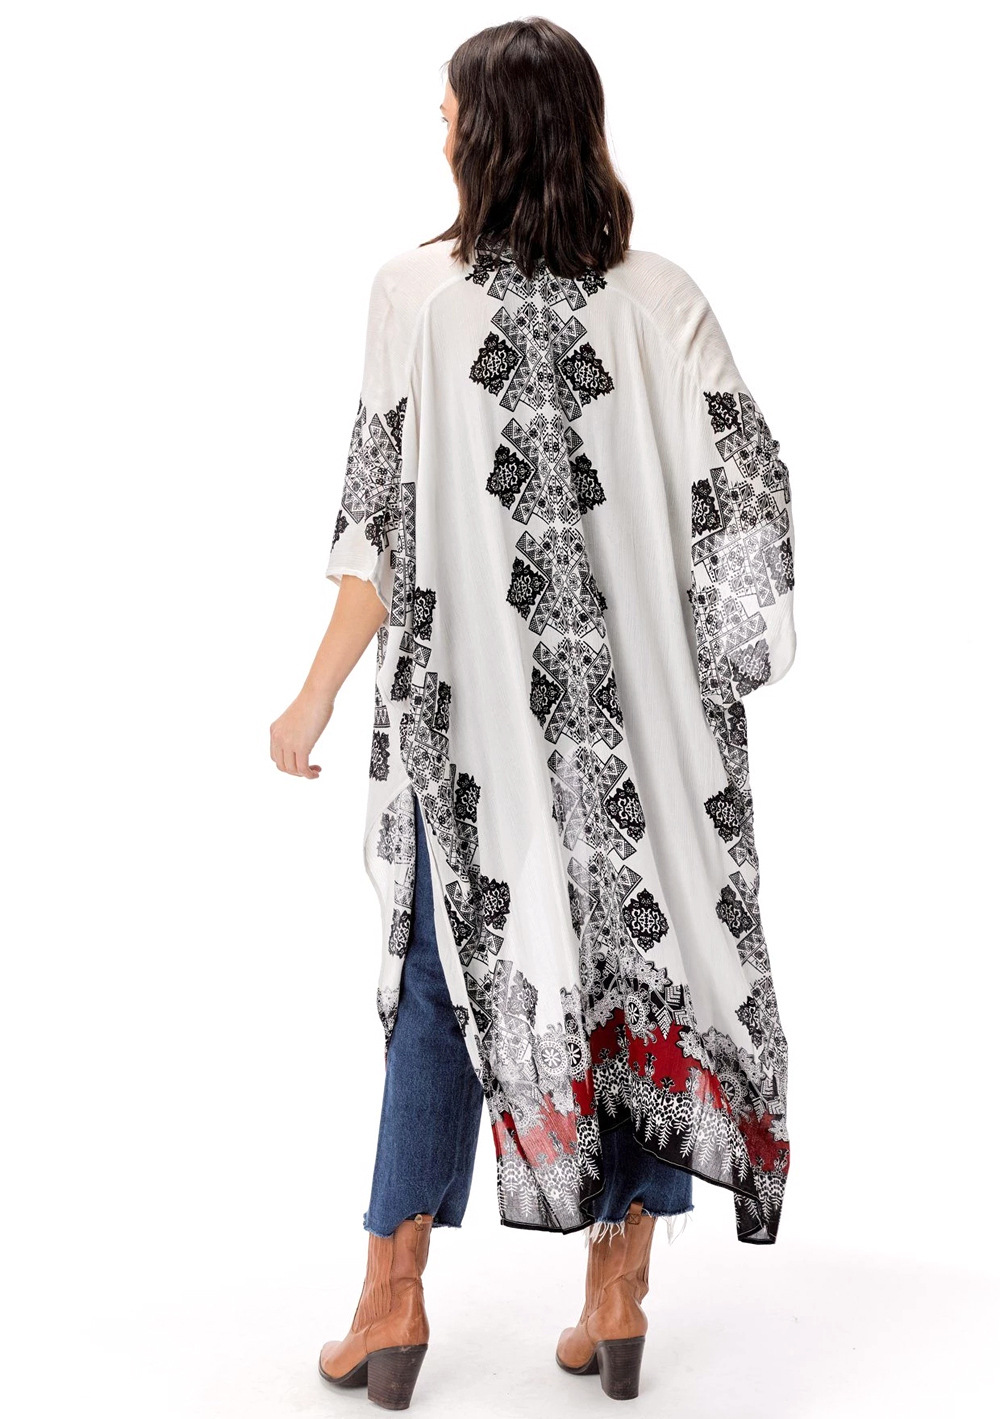 summer women's fashion printed cardigan loose casual beach vacation cover gown NSDF1483